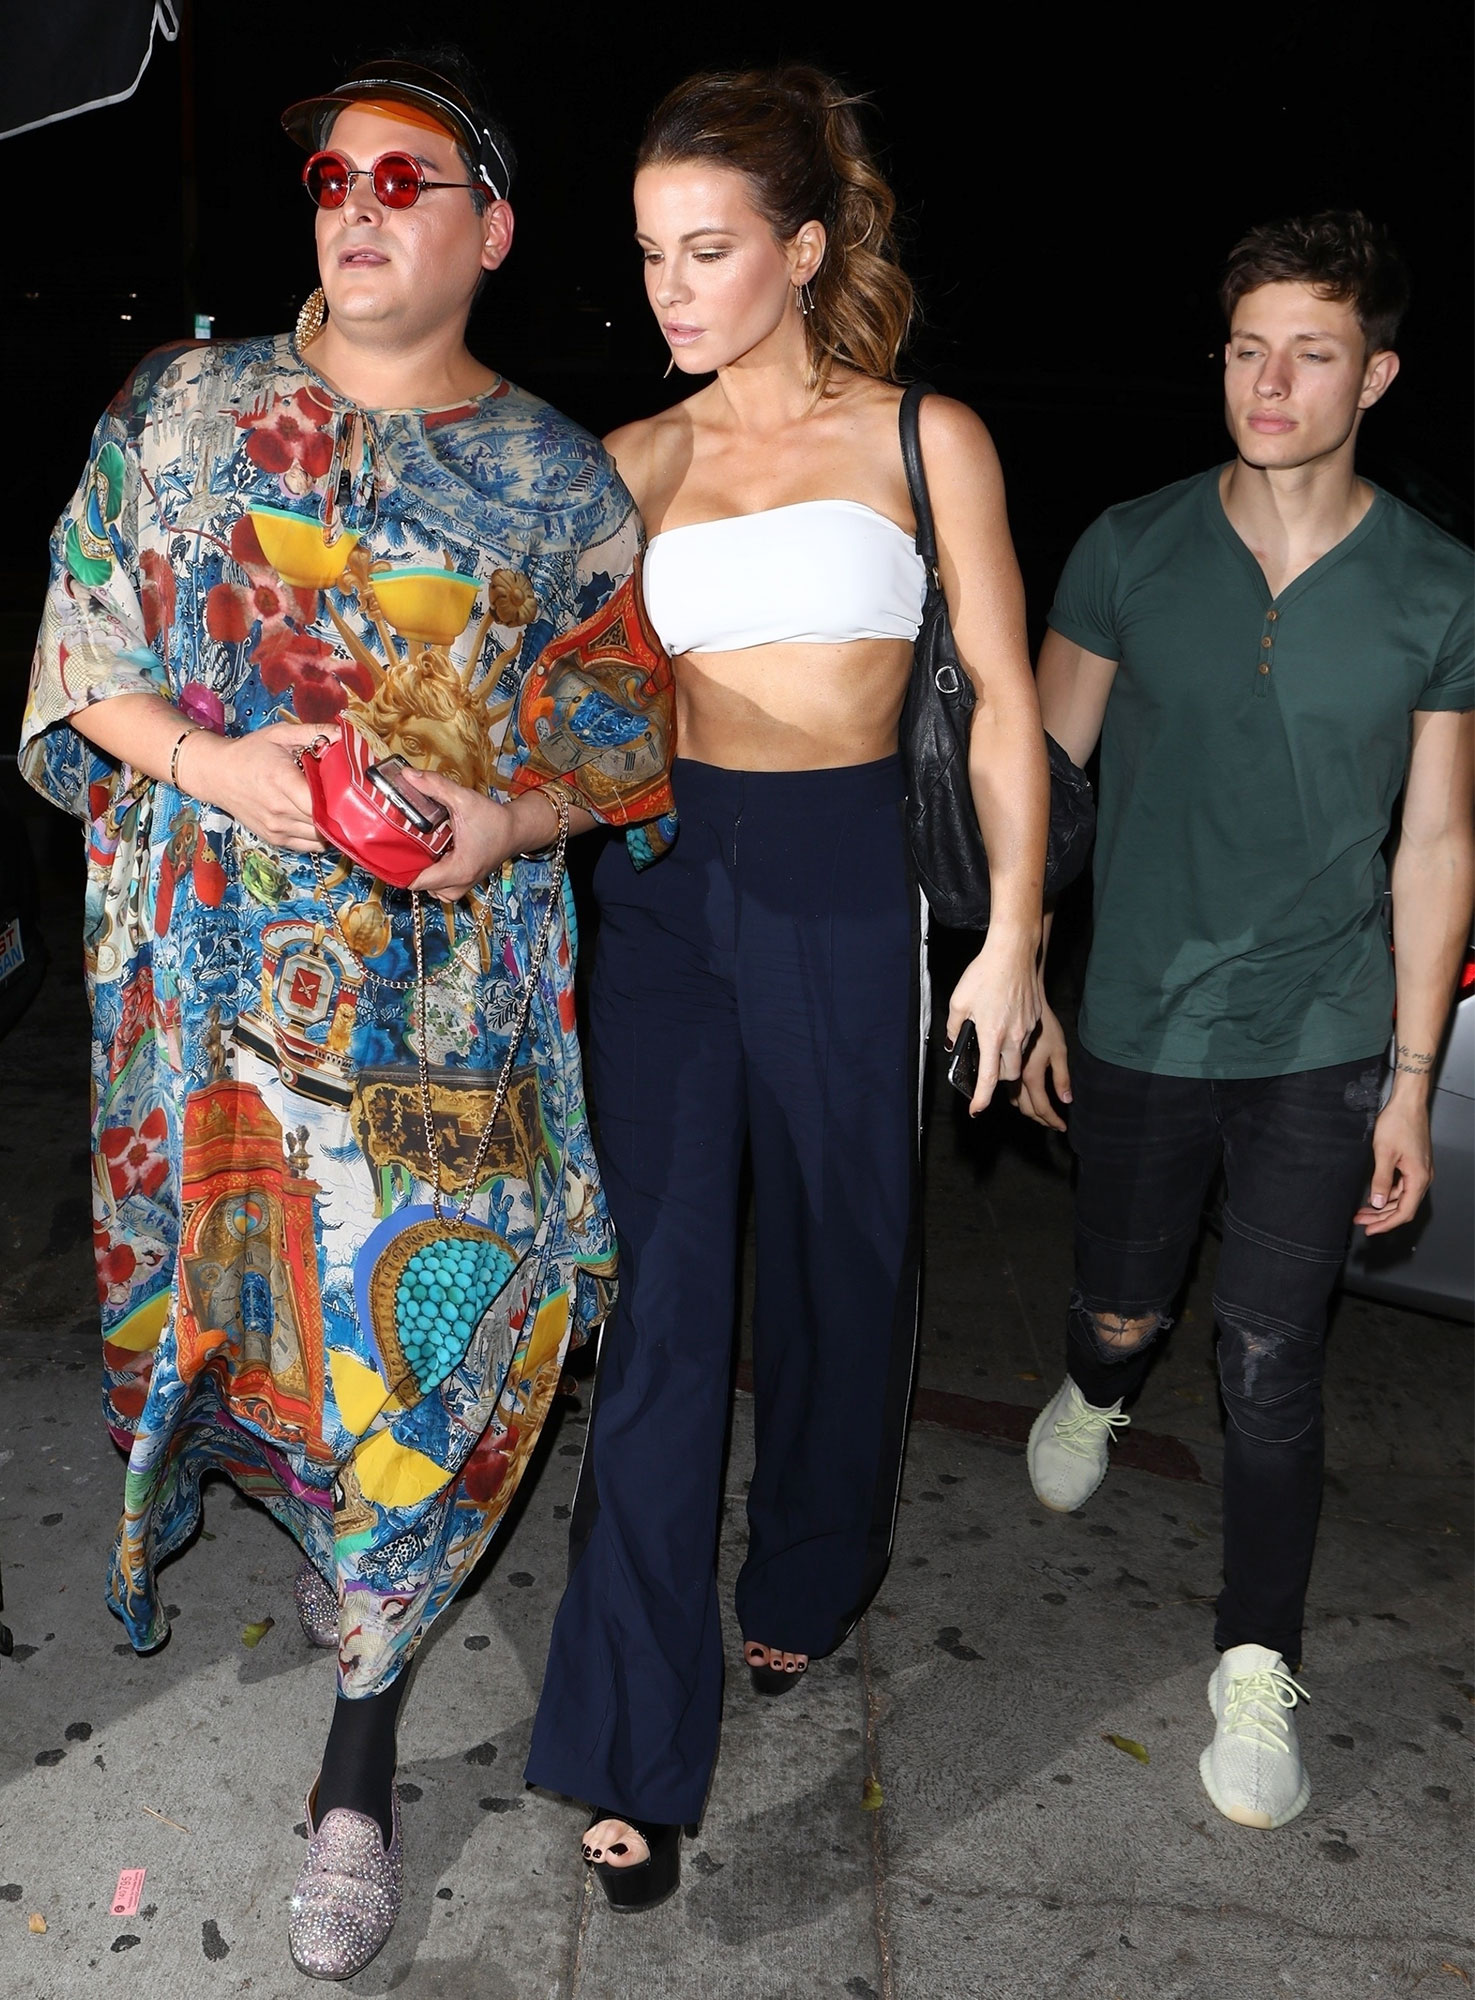 Kate Beckinsale and boyfriend Matt Rife arrive at Dave Chappelle's comedy show in WeHo